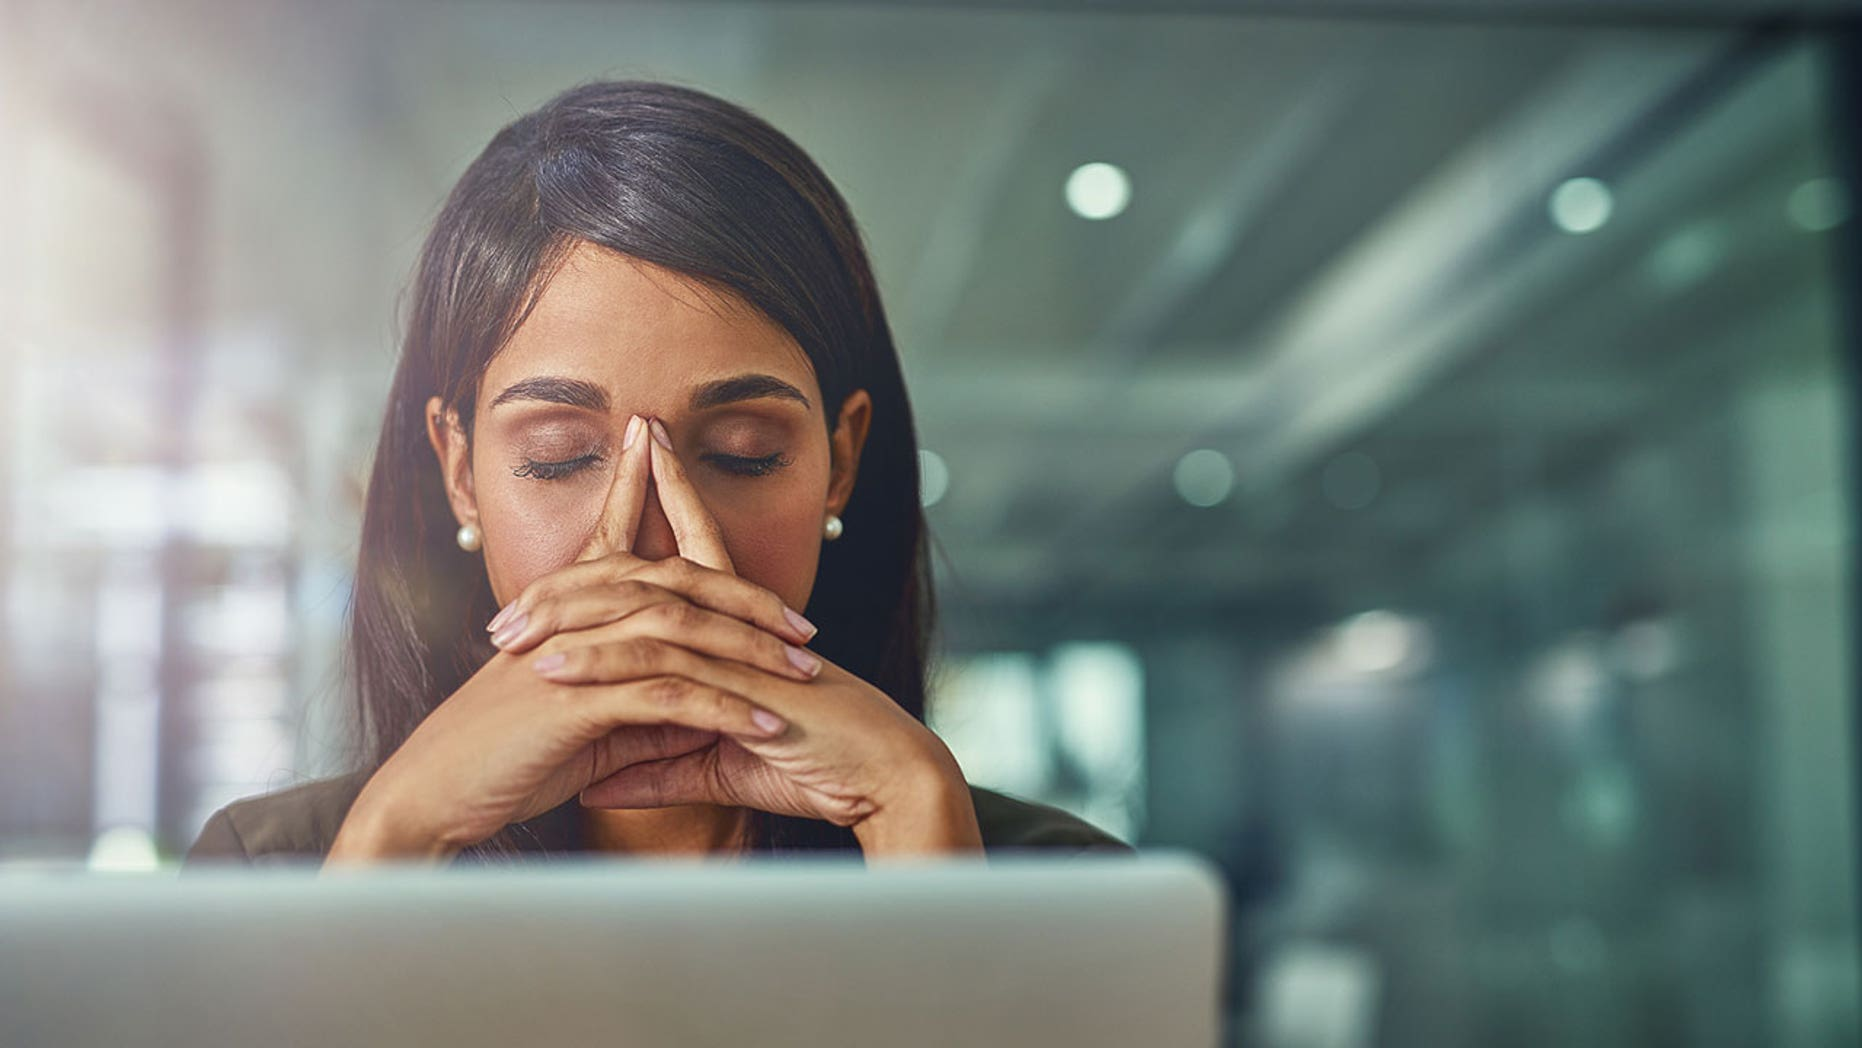 The average American said that around 80 percent of their bad days are caused by stress at work.